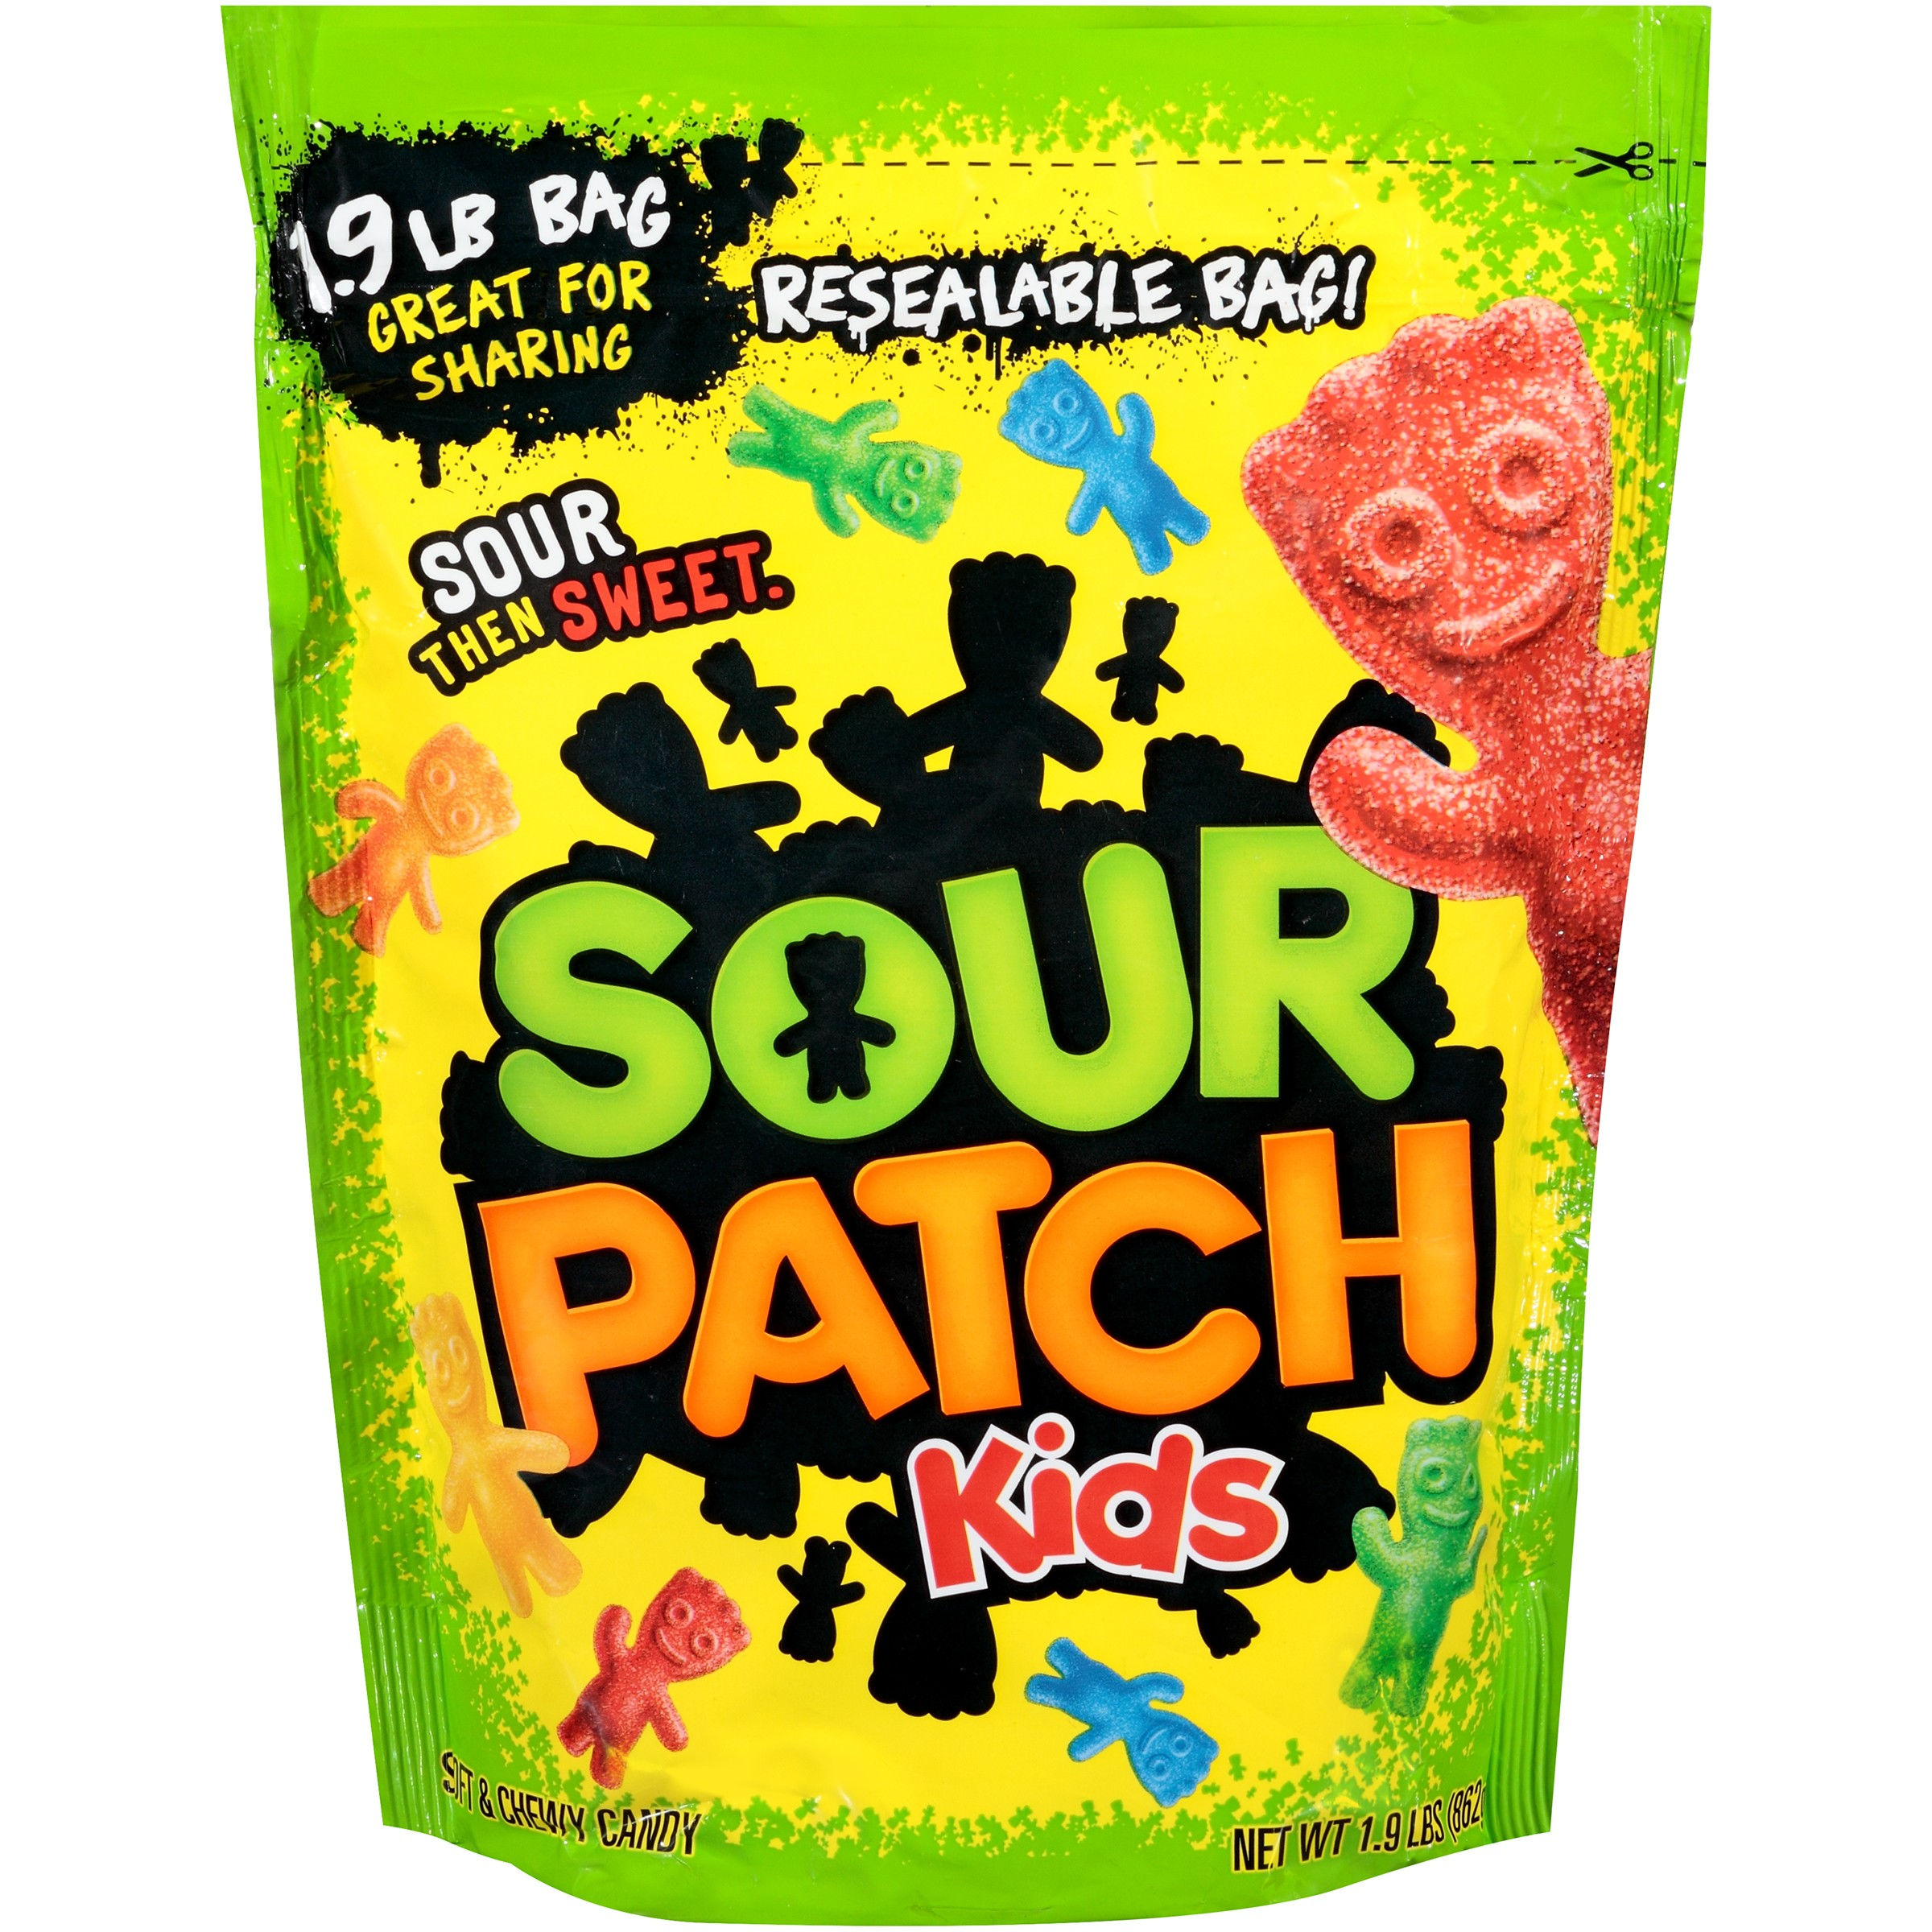 Home & Garden Loyal Sour Patch Kids ~ Sour Then Sweet Candy ~ Resealable Bag 1.9 Lbs Bag Candy, Gum & Chocolate